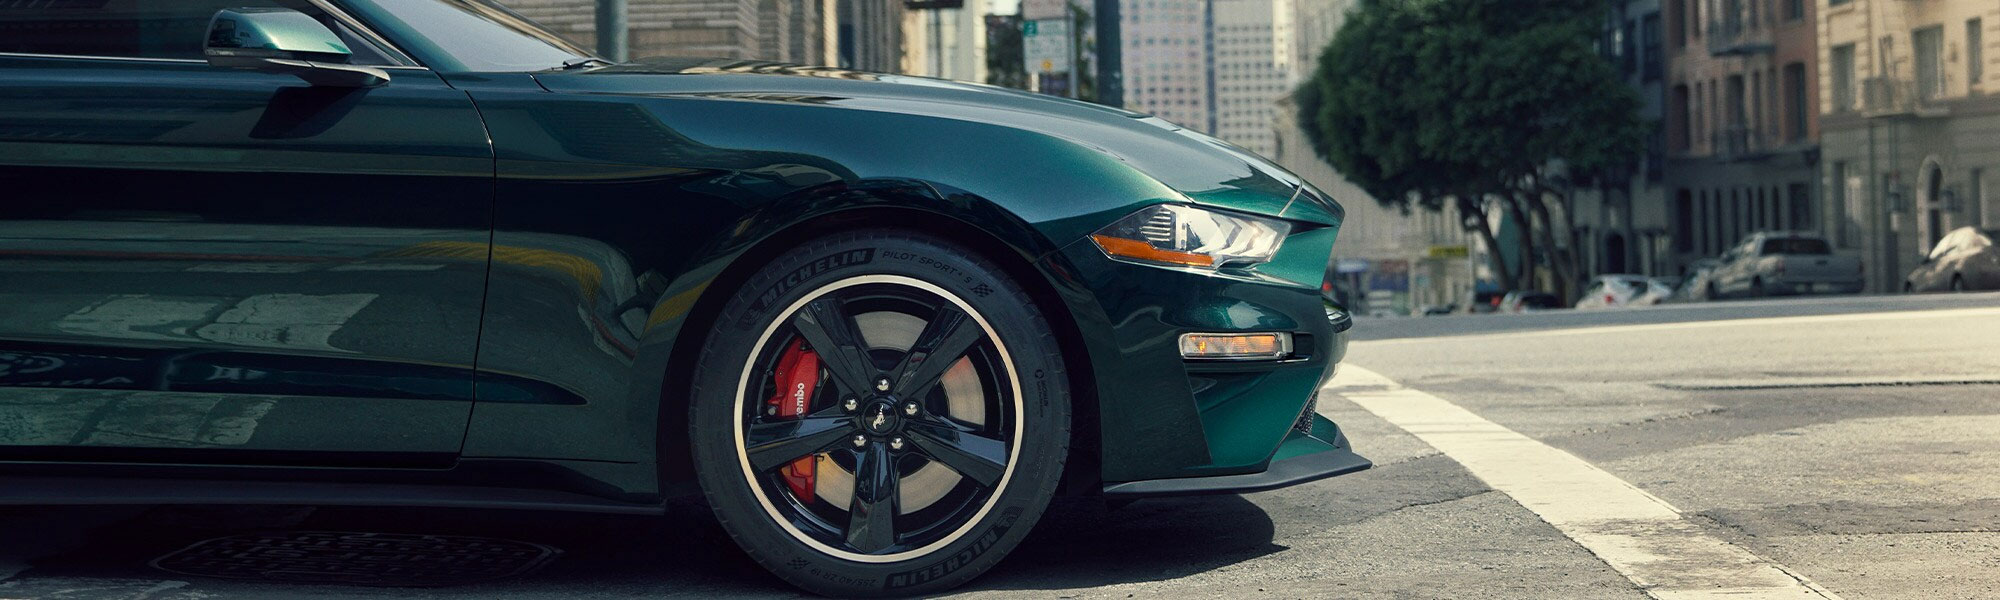 New Ford Mustang on the Road